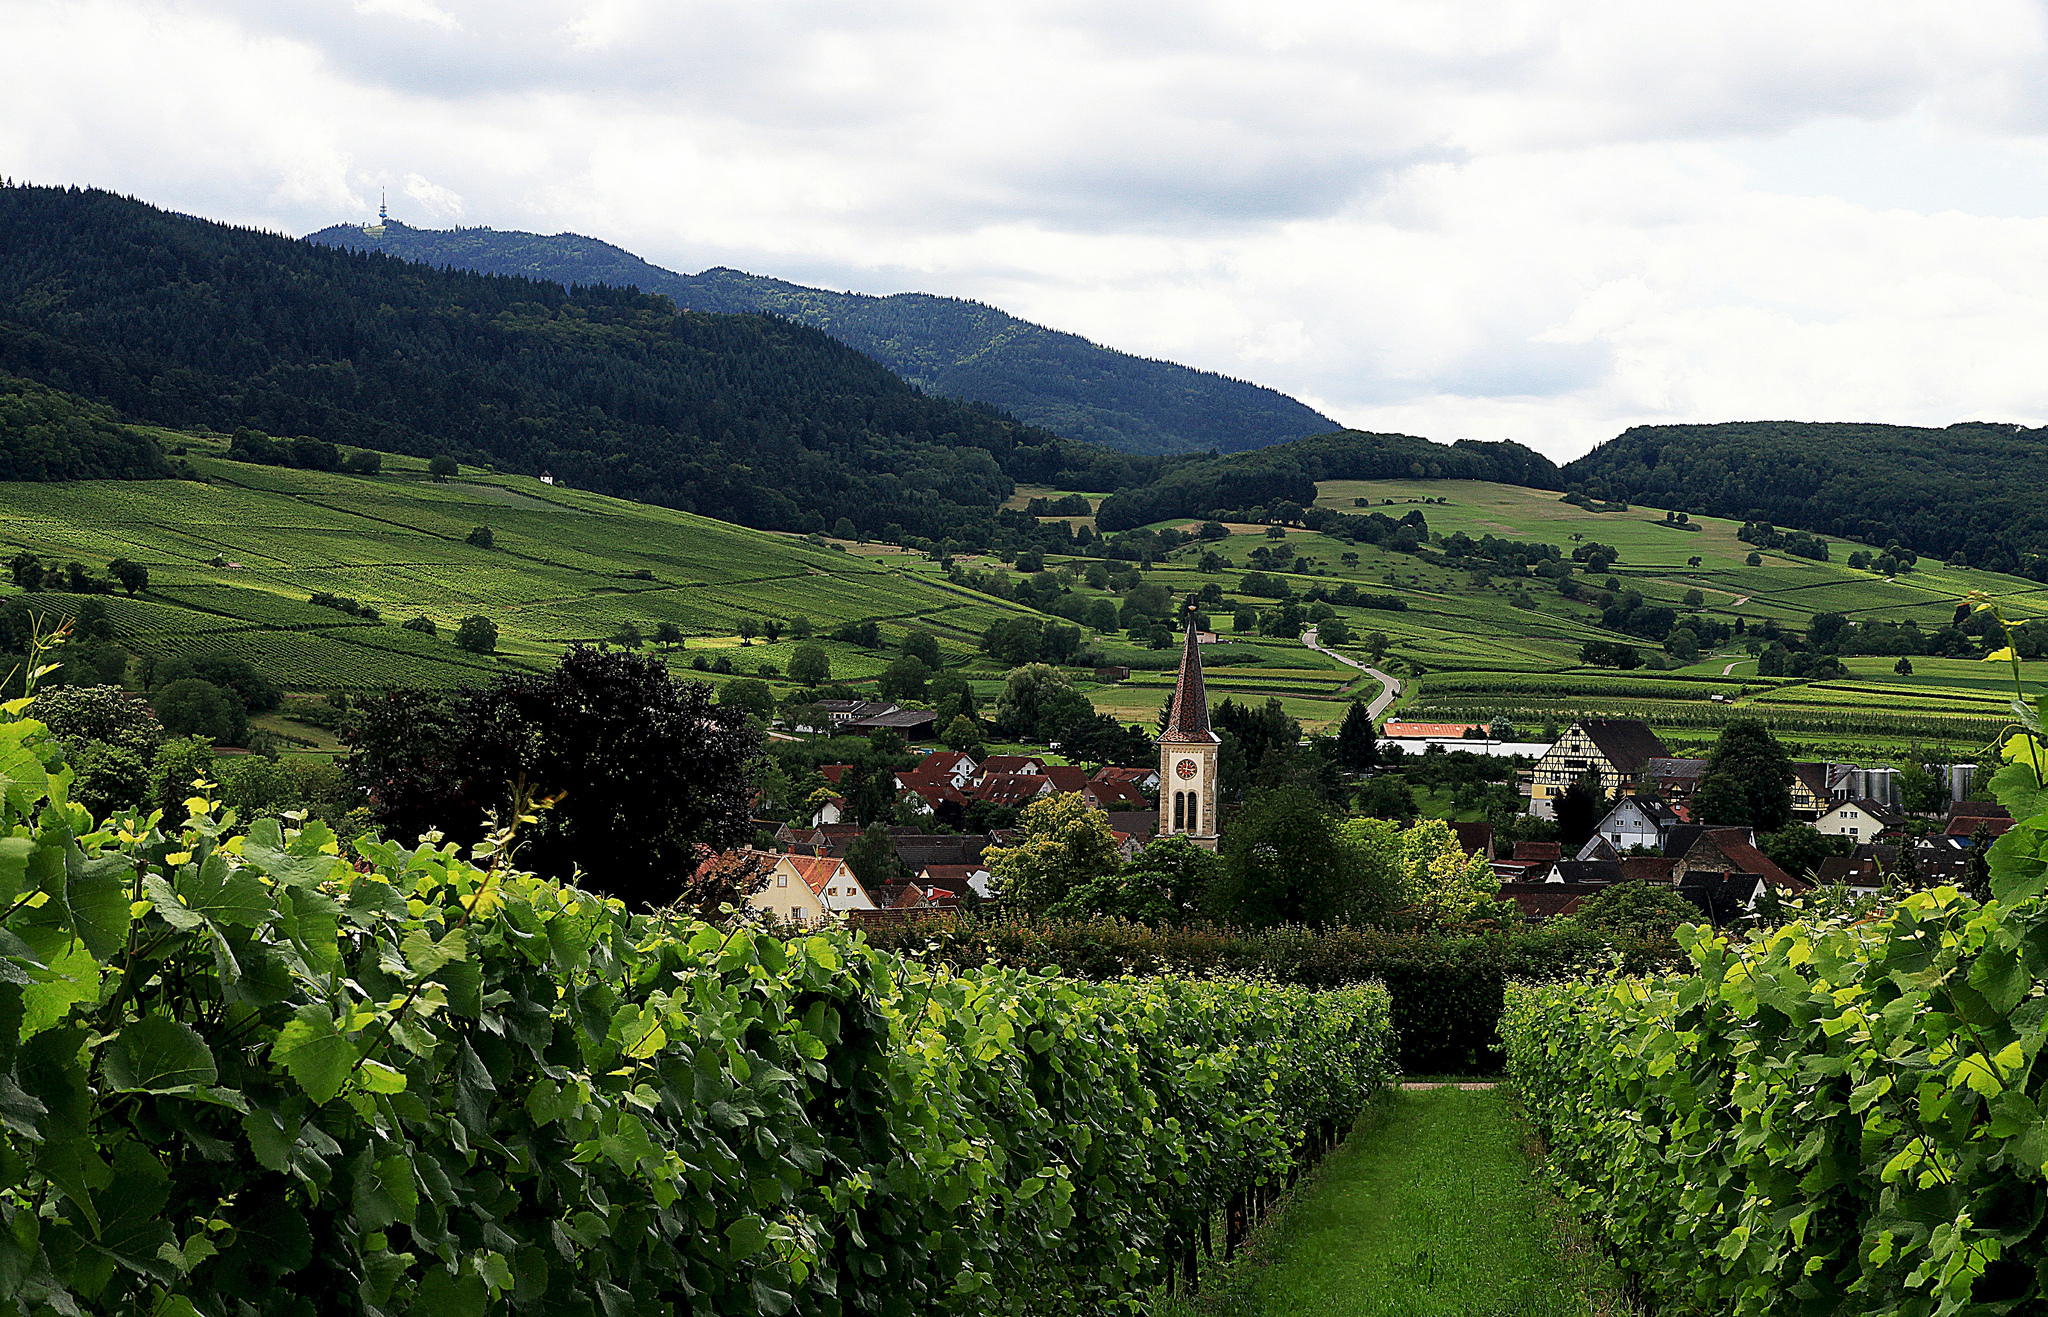 Village of Laufen, Rhine Valley, Germany. Image: Flickr user Peter Rintels (CC BY-ND 2.0)